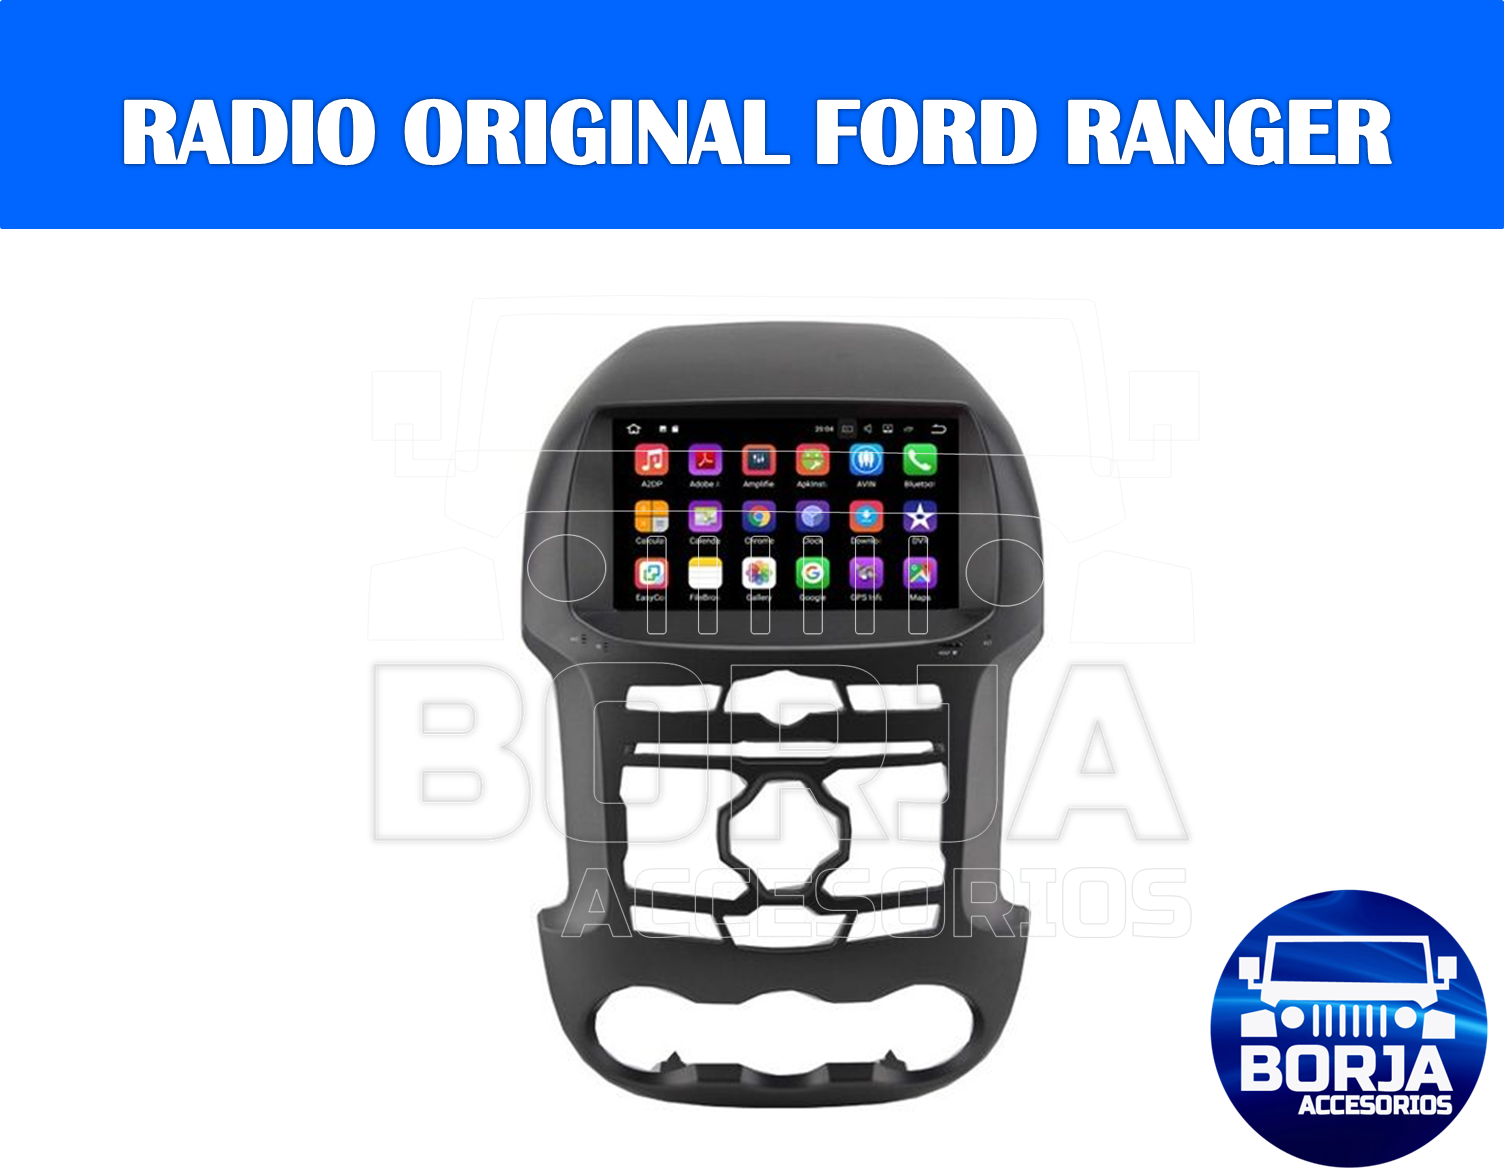 Radio Original Ford Ranger 2016 Ford Ranger Ford Ranger 2016